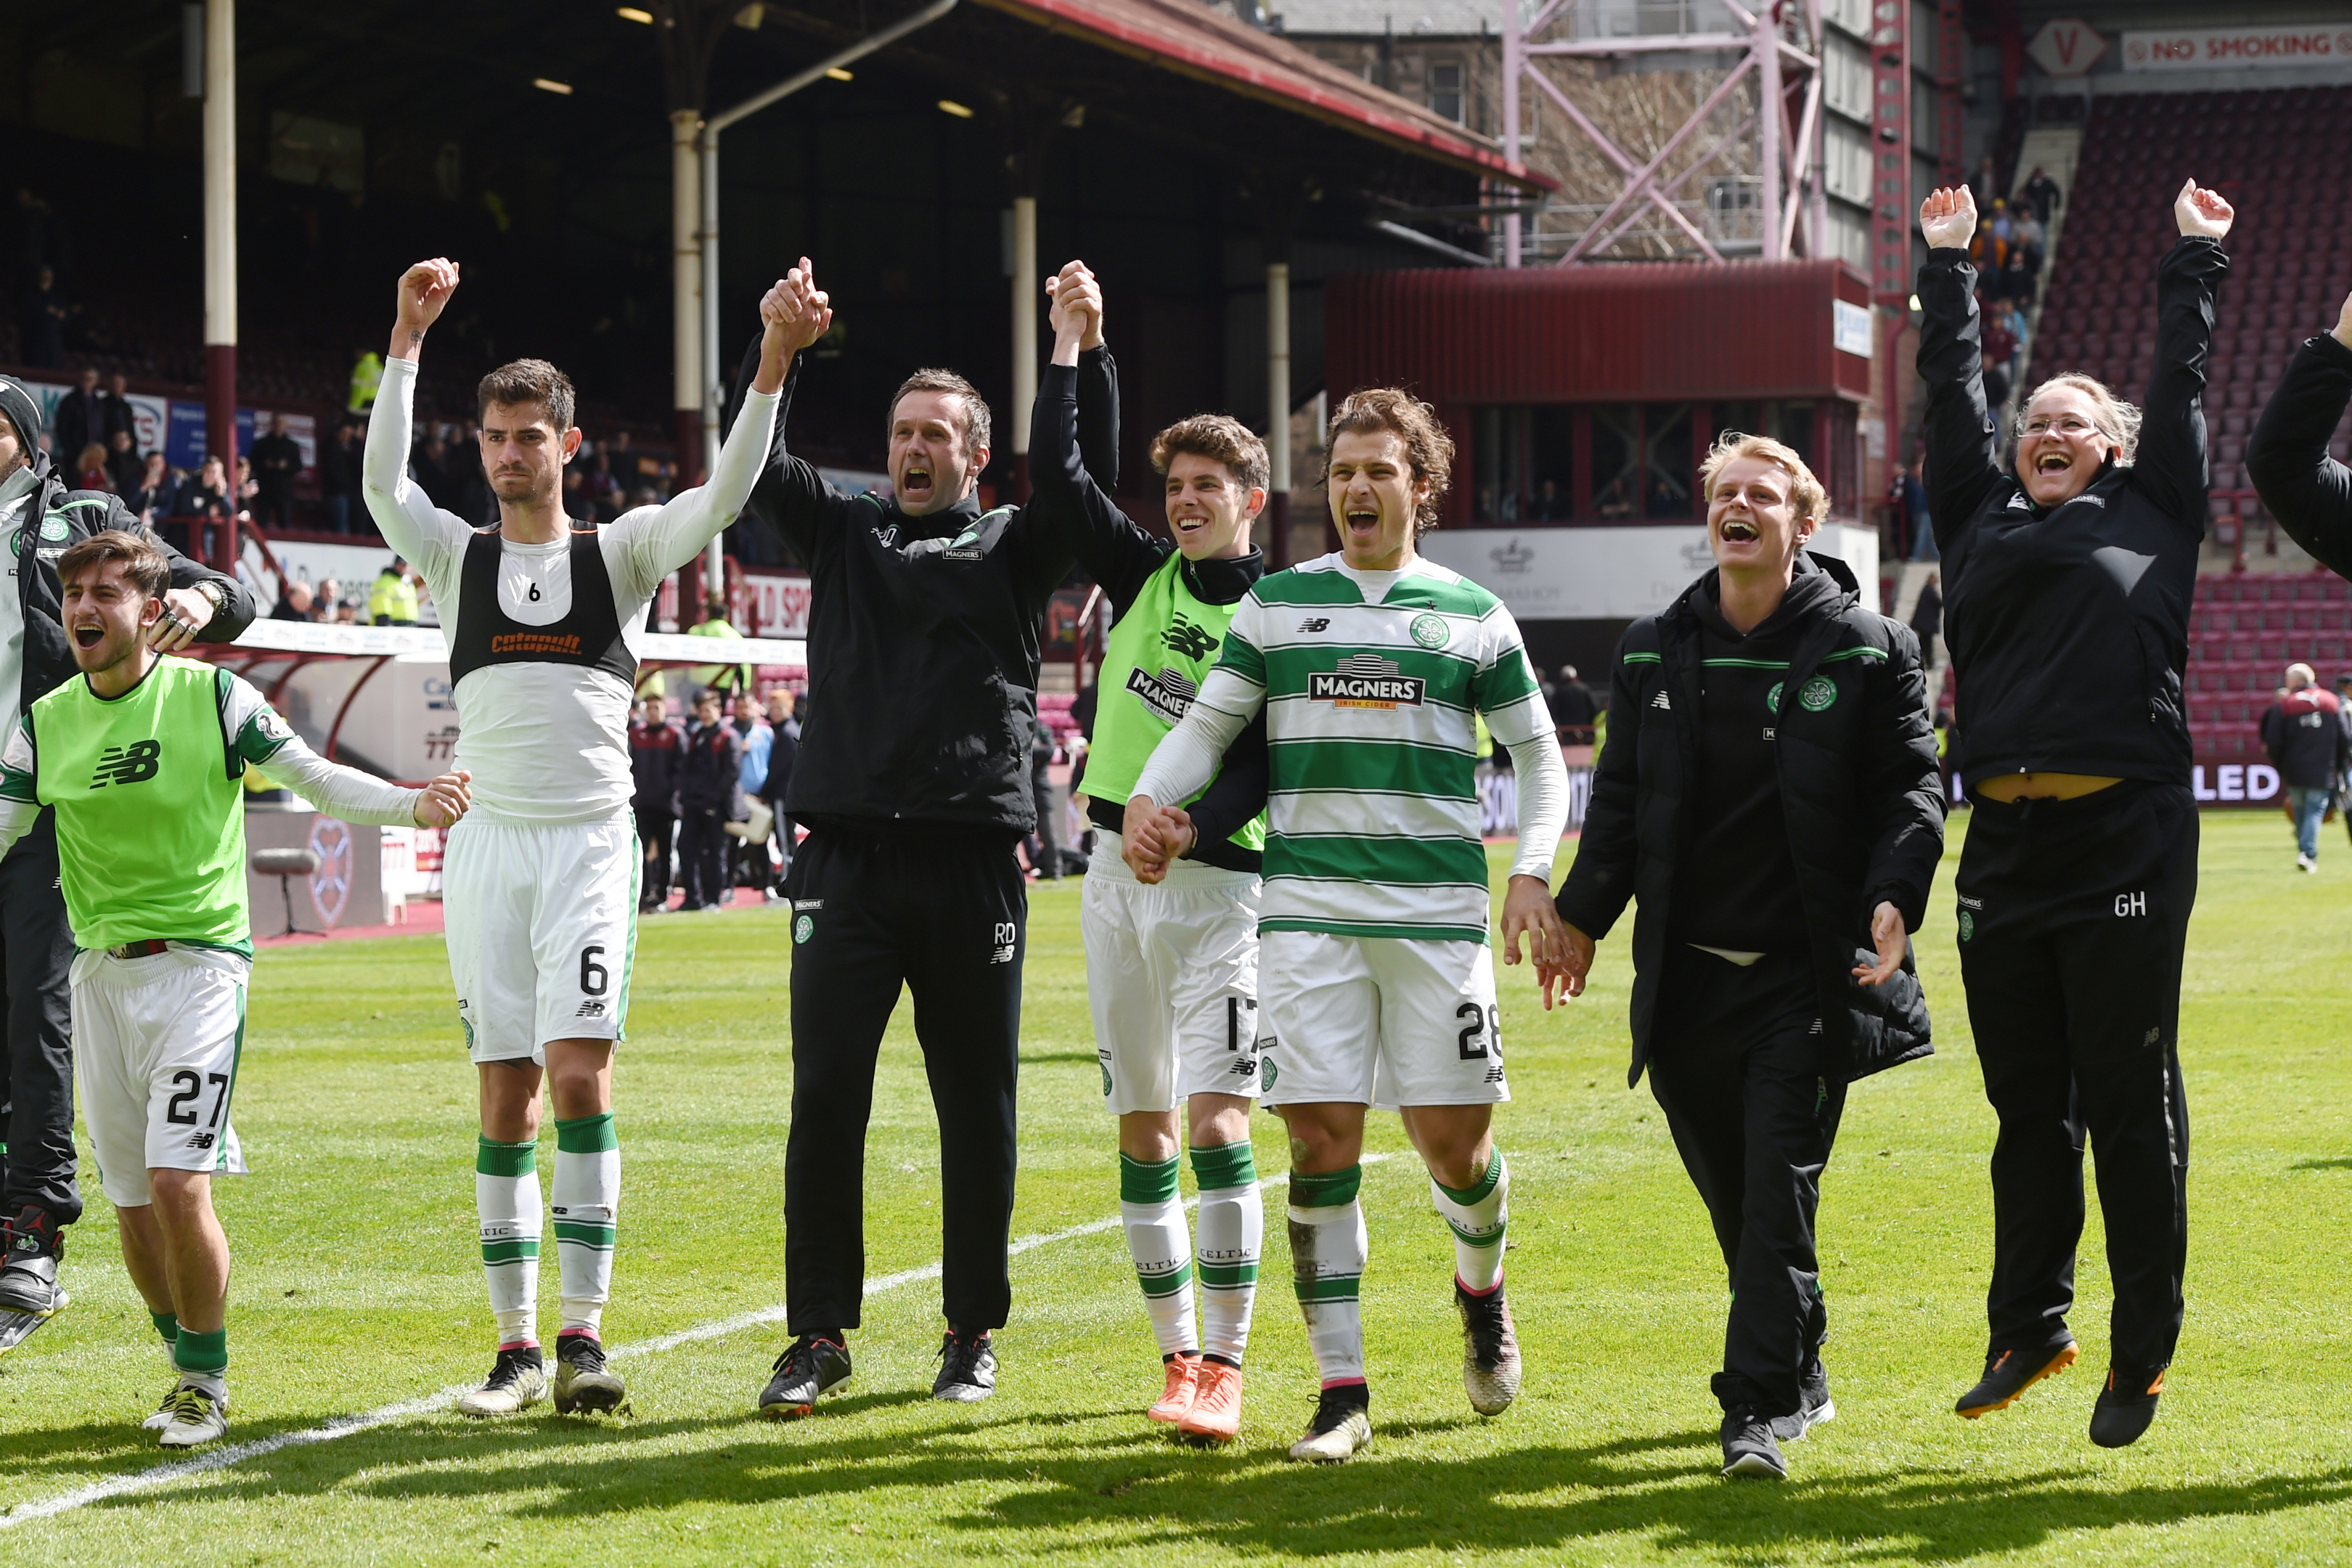 Celtic celebrate after the match, having all but won the title.